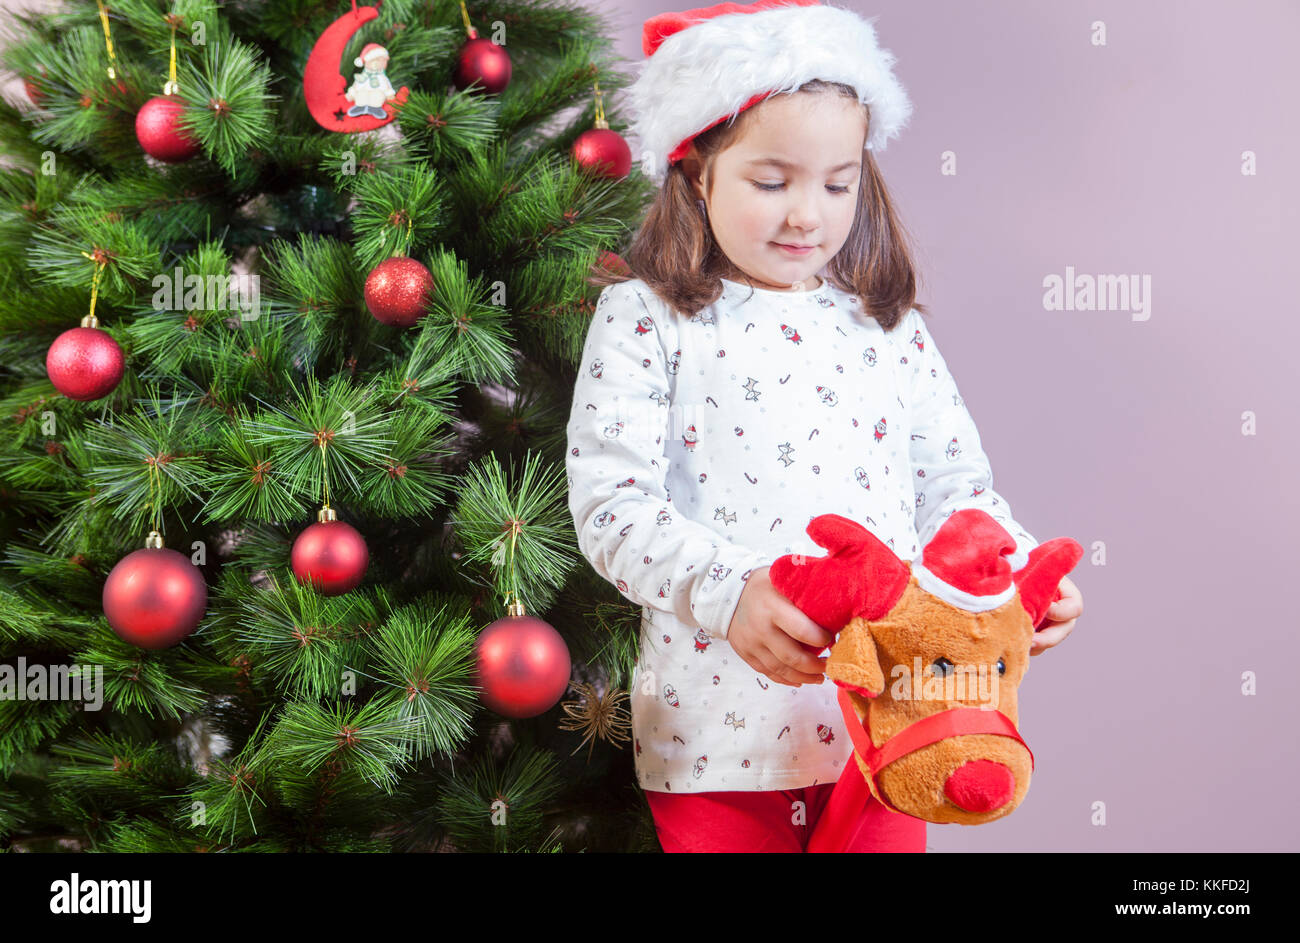 Little child girl playing with stick plush reindeer toy beside Christmas Tree at home - Stock Image